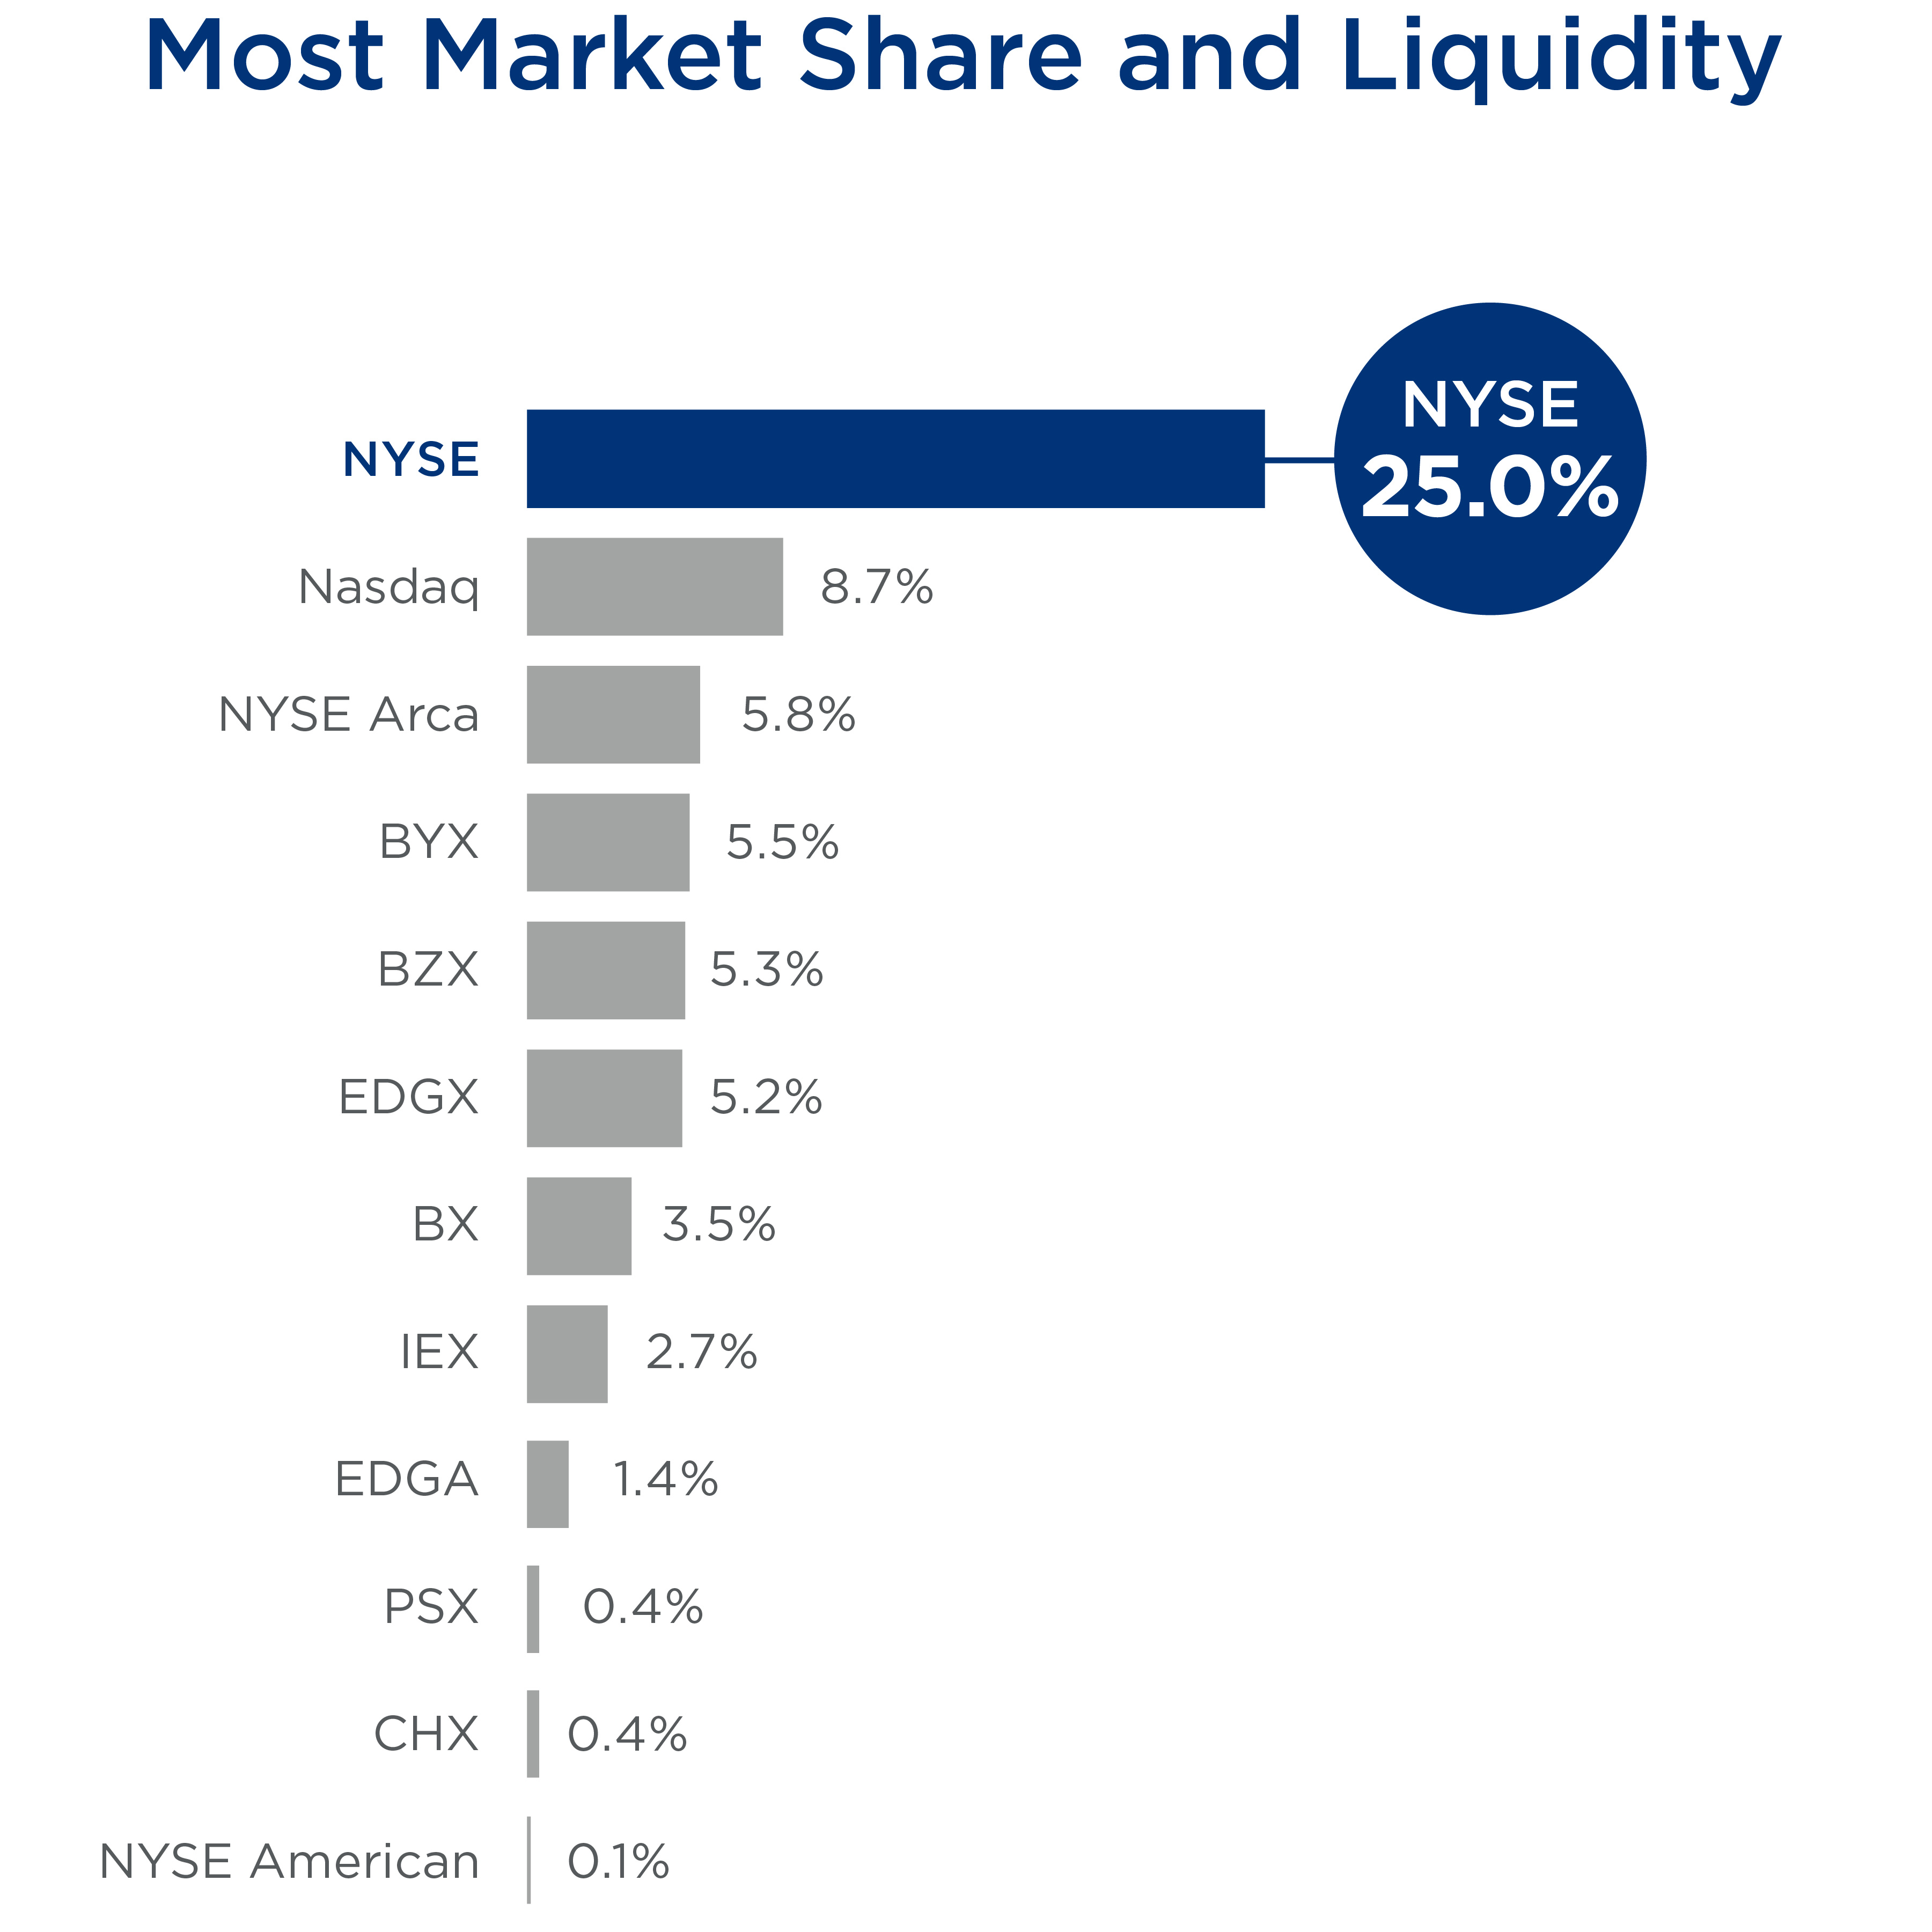 NYSE Equities Most Market Share and Liquidity